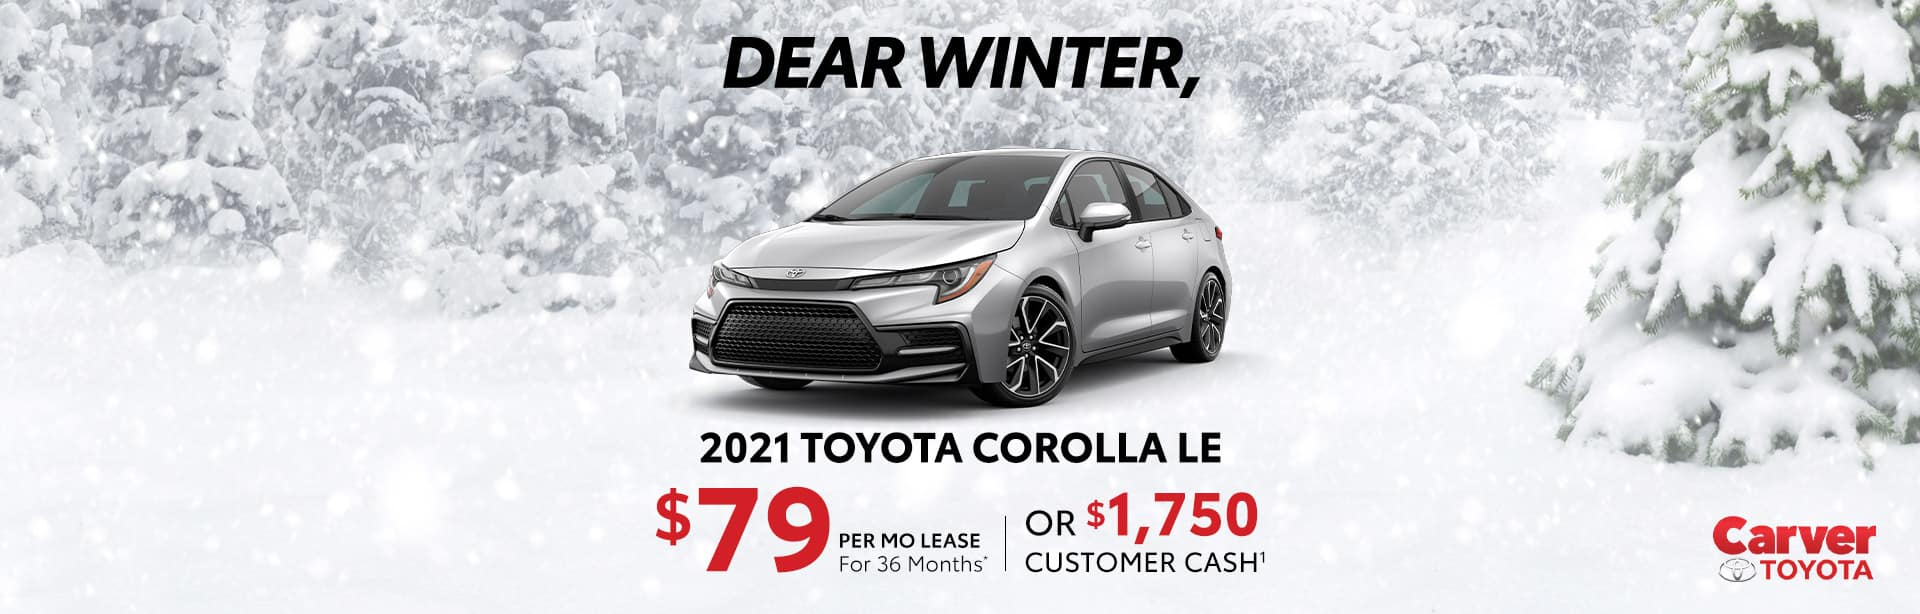 Big savings and lease offers on a new 2021 Toyota Corolla LE near Taylorsville IN